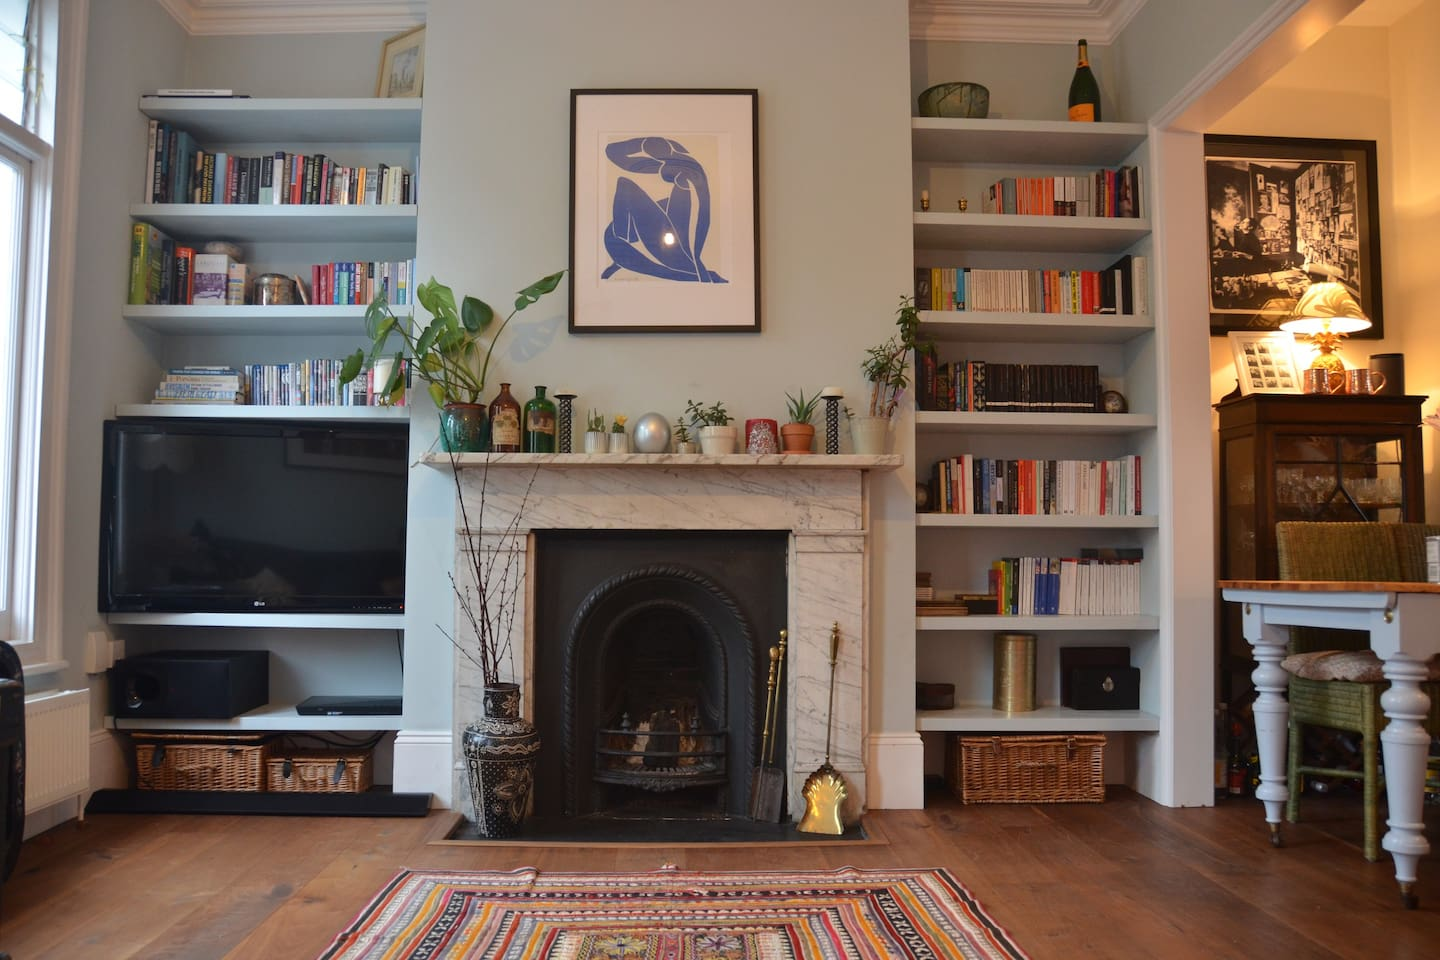 The living room, with original fireplace, TV (with Amazon Firestick / Netflix etc) and Victorian fireplace